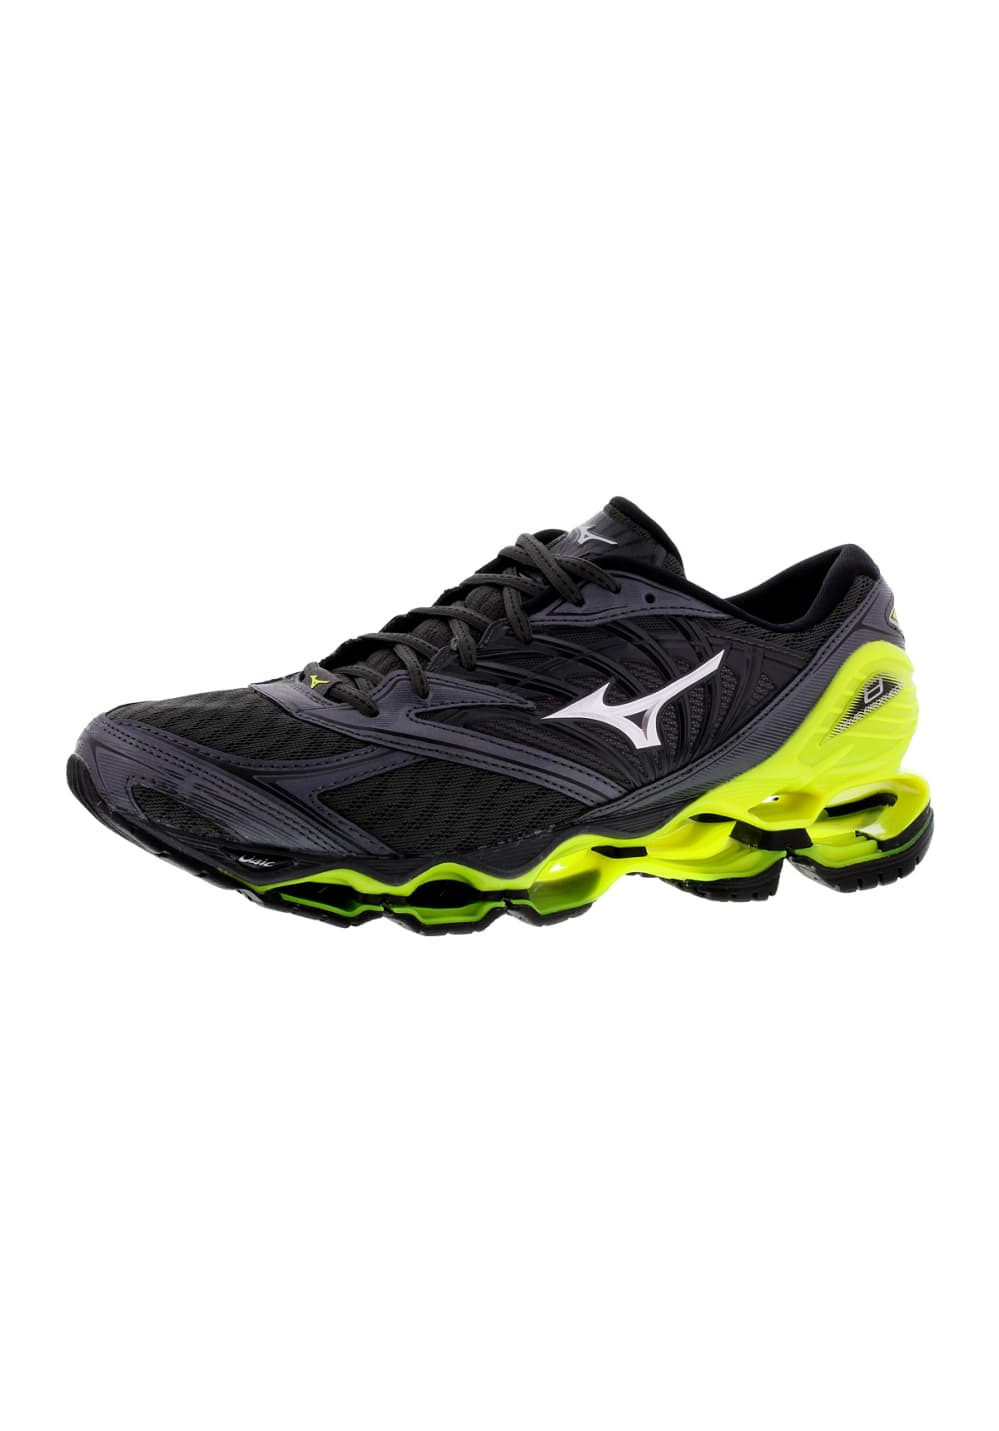 Mizuno Homme Chaussures Prophecy 8 Pour Wave Running Gris 9WEYeD2HIb